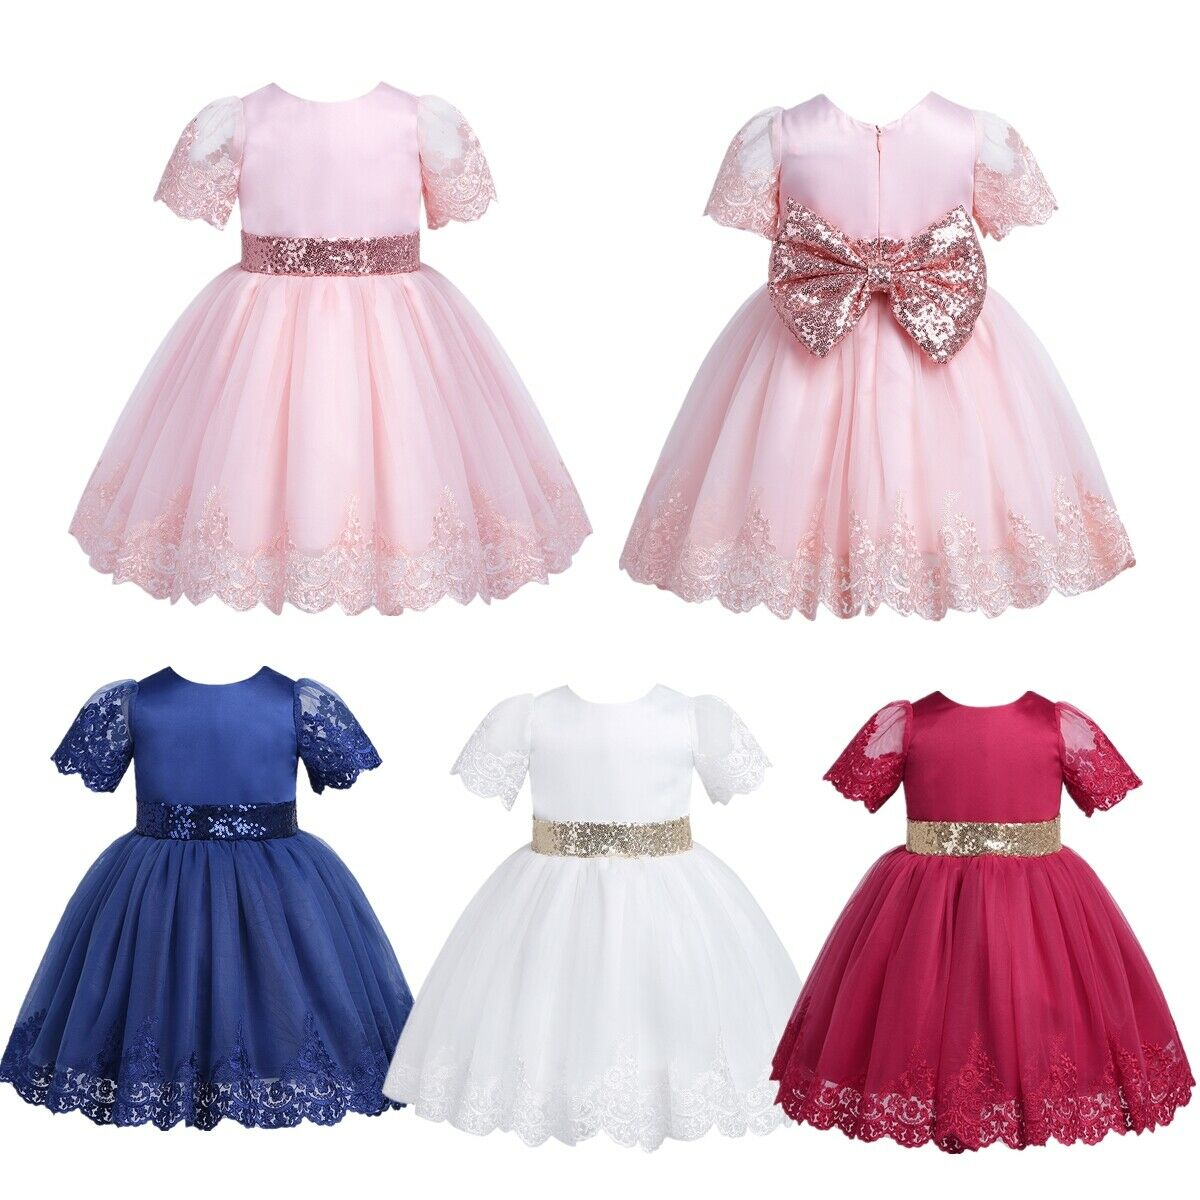 Infant Baby Girls Birthday Party Dress Sequined Princess Pageant Gown Costume